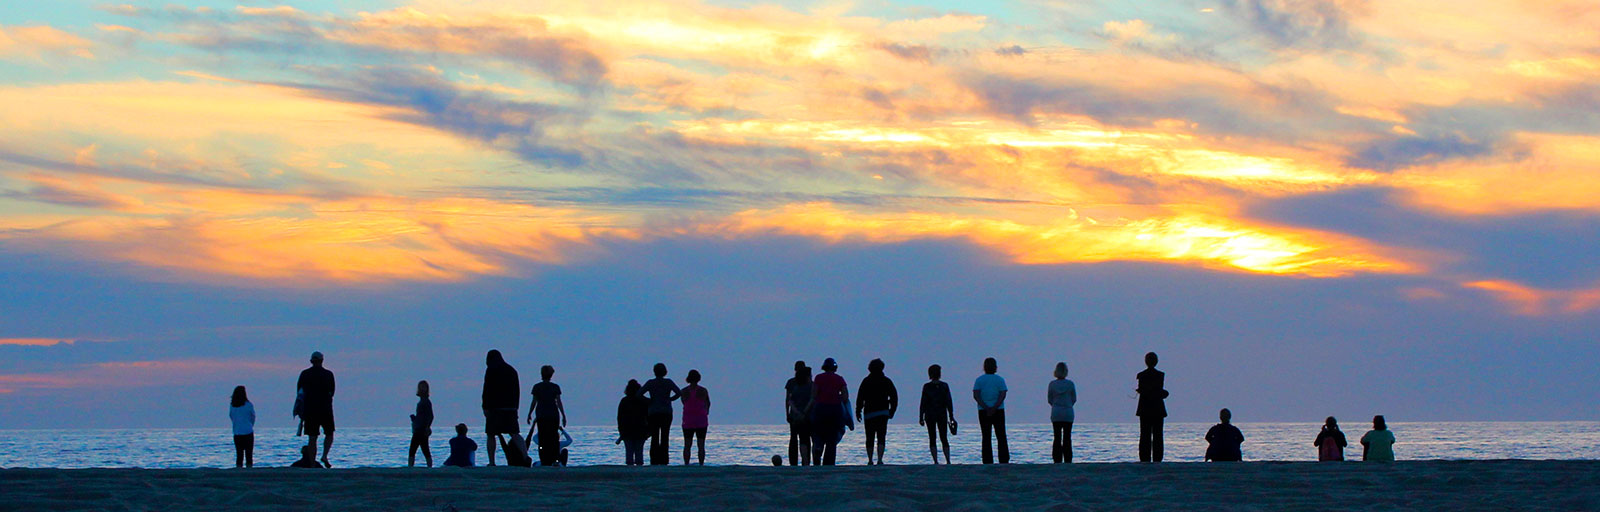 Wellness & Yoga Retreats in Baja, Mexico: Silhouettes at Sunset